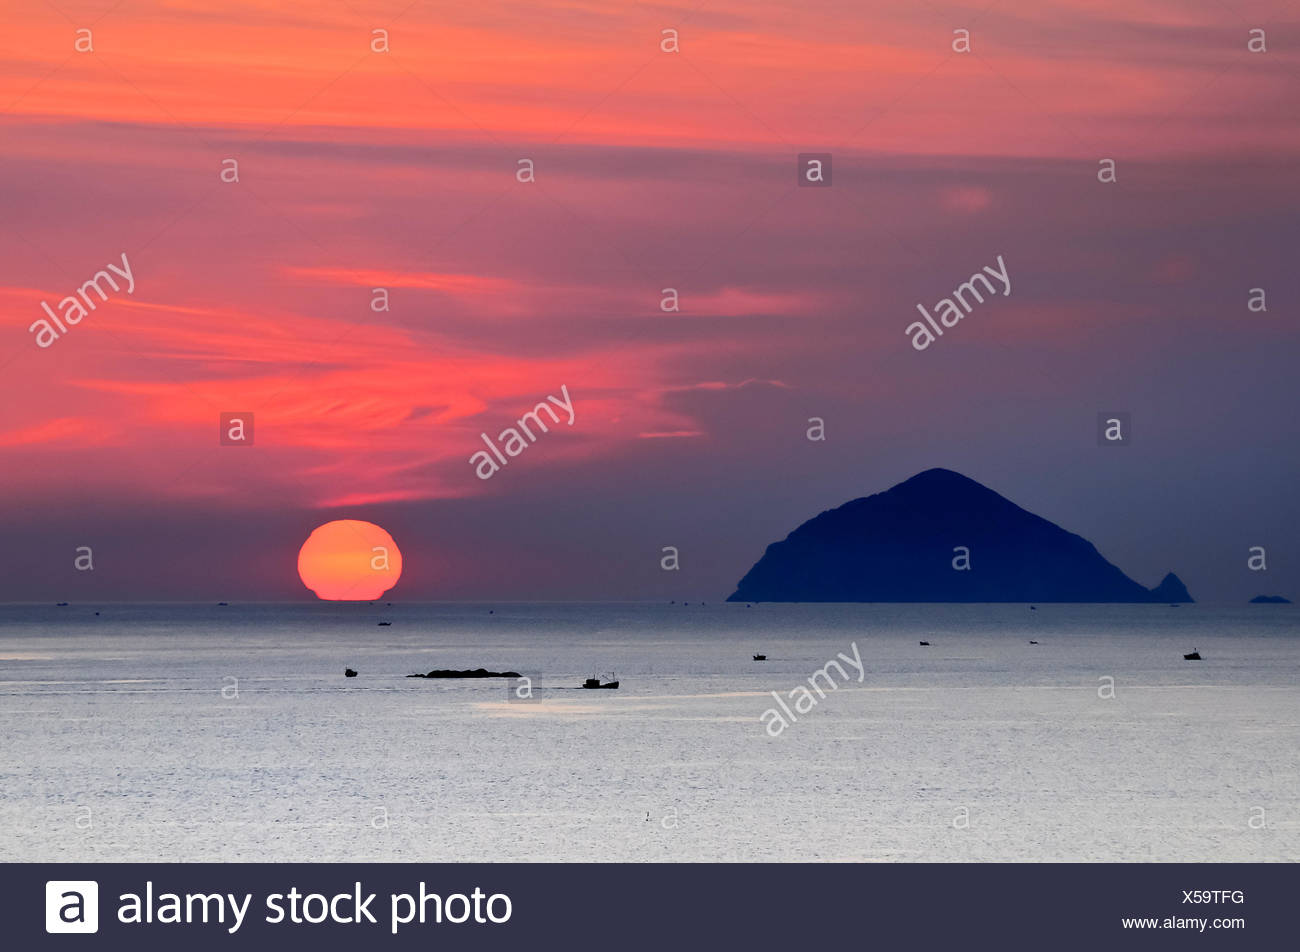 Sunset on the beach of Doc Let, Vietnam, Southeast Asia - Stock Image